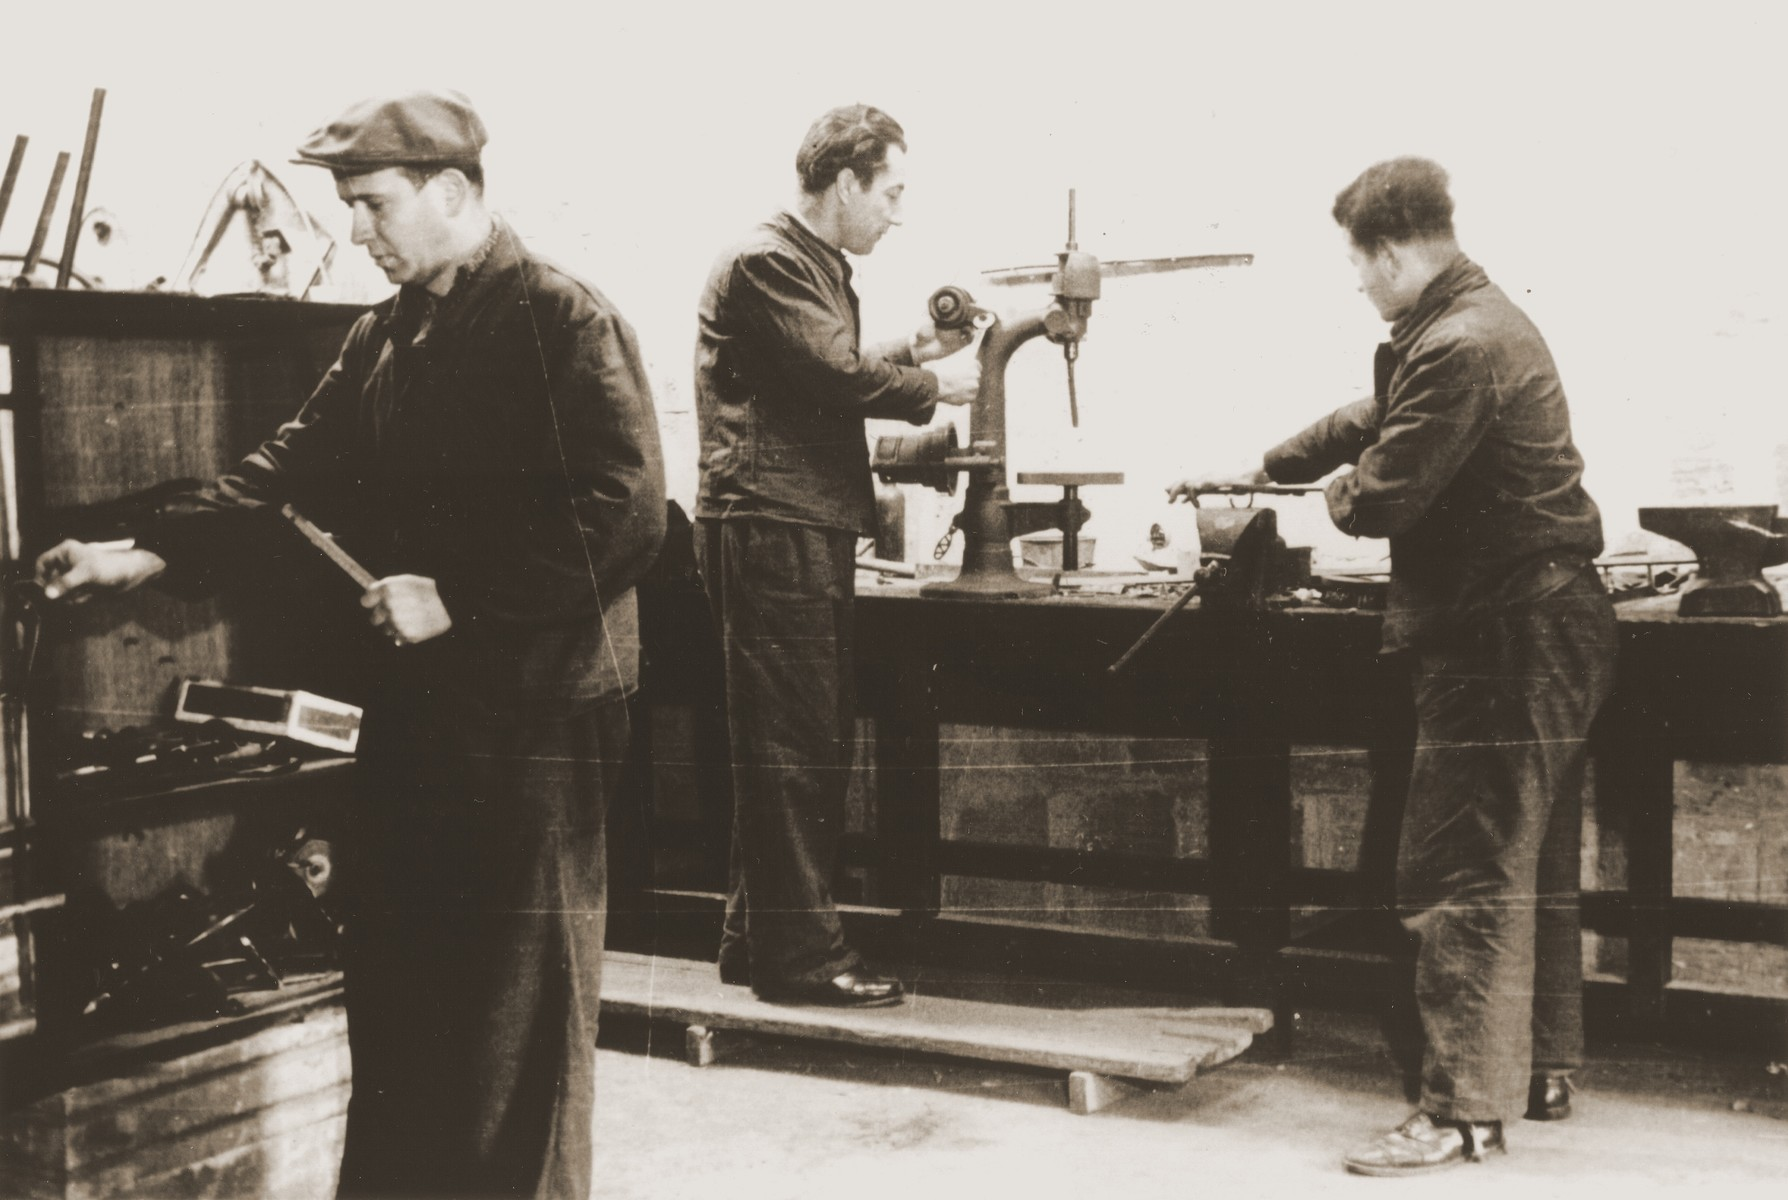 Jewish refugees at work in a metalshop in the Pingliang Road Home in Shanghai.  Pictured at the left is Viktor Stummer.